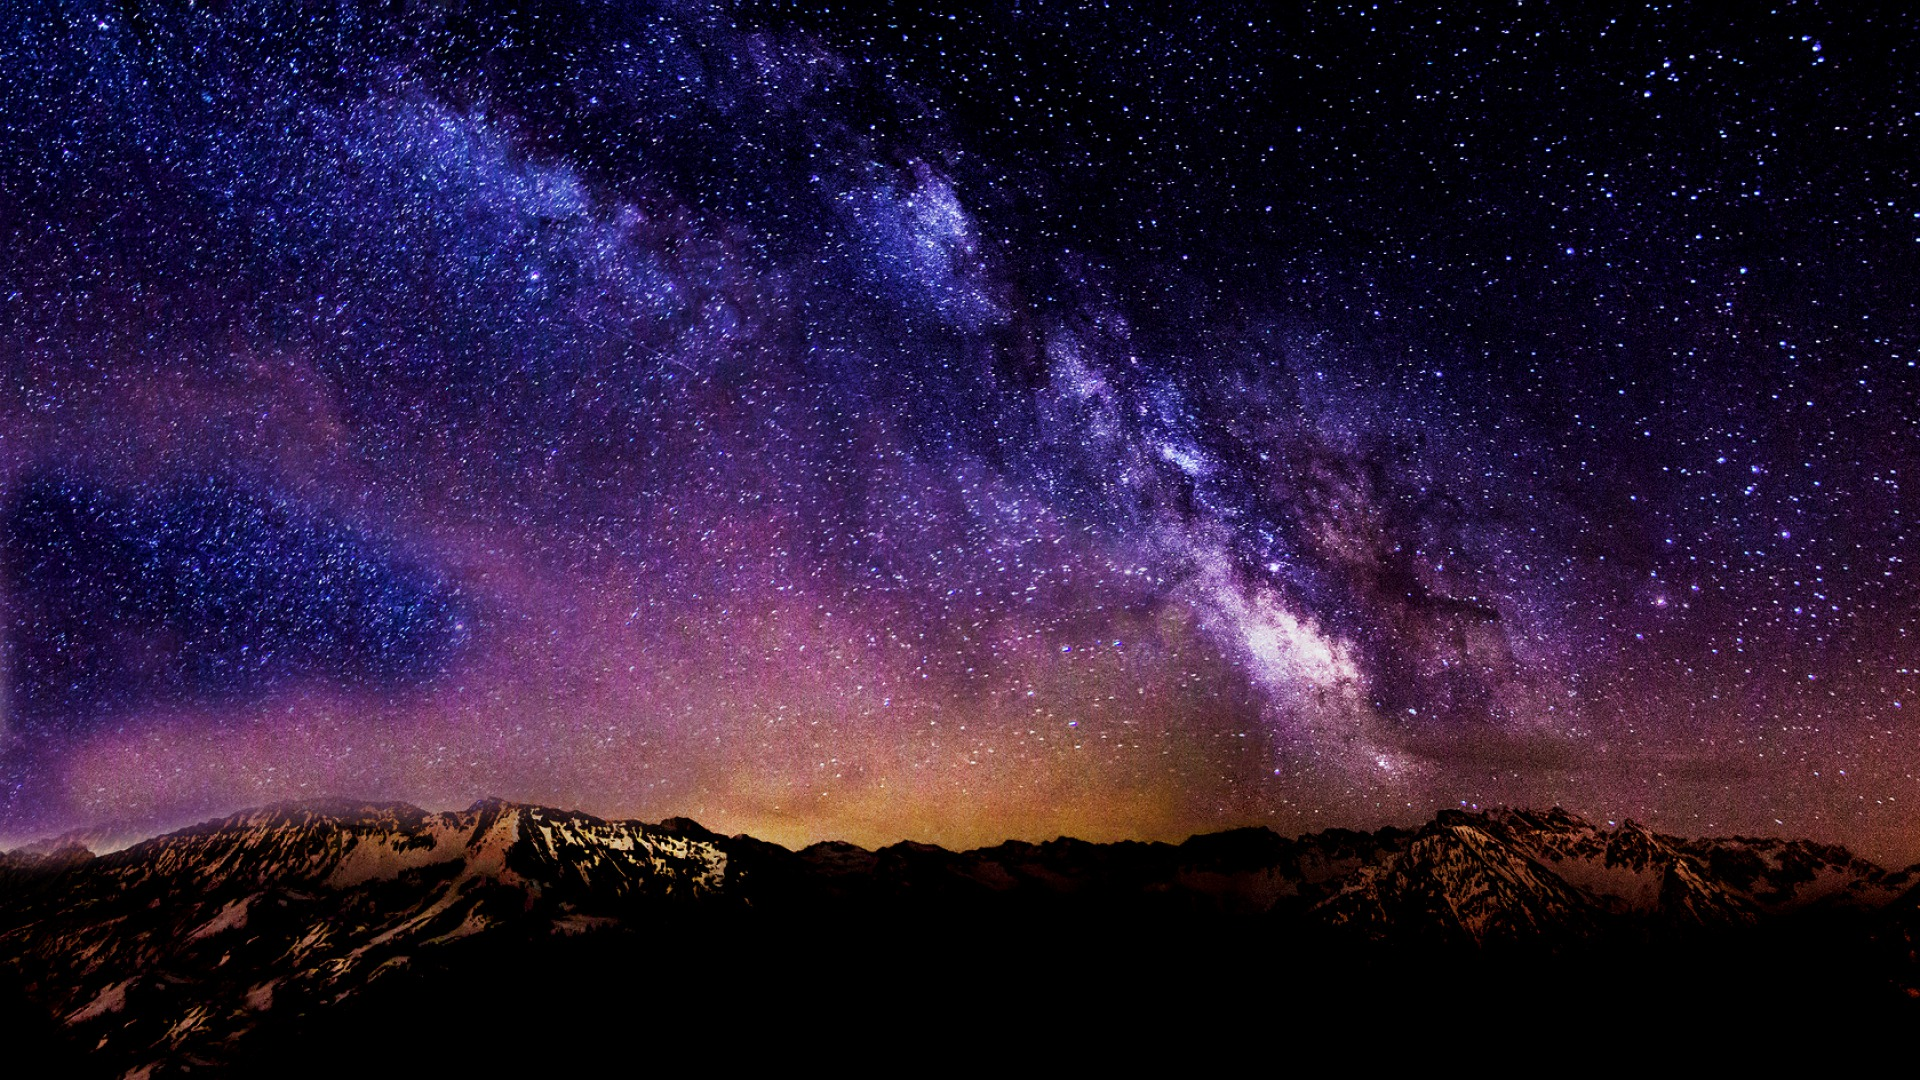 Night Sky Background Wallpapers WIN10 THEMES 1920x1080